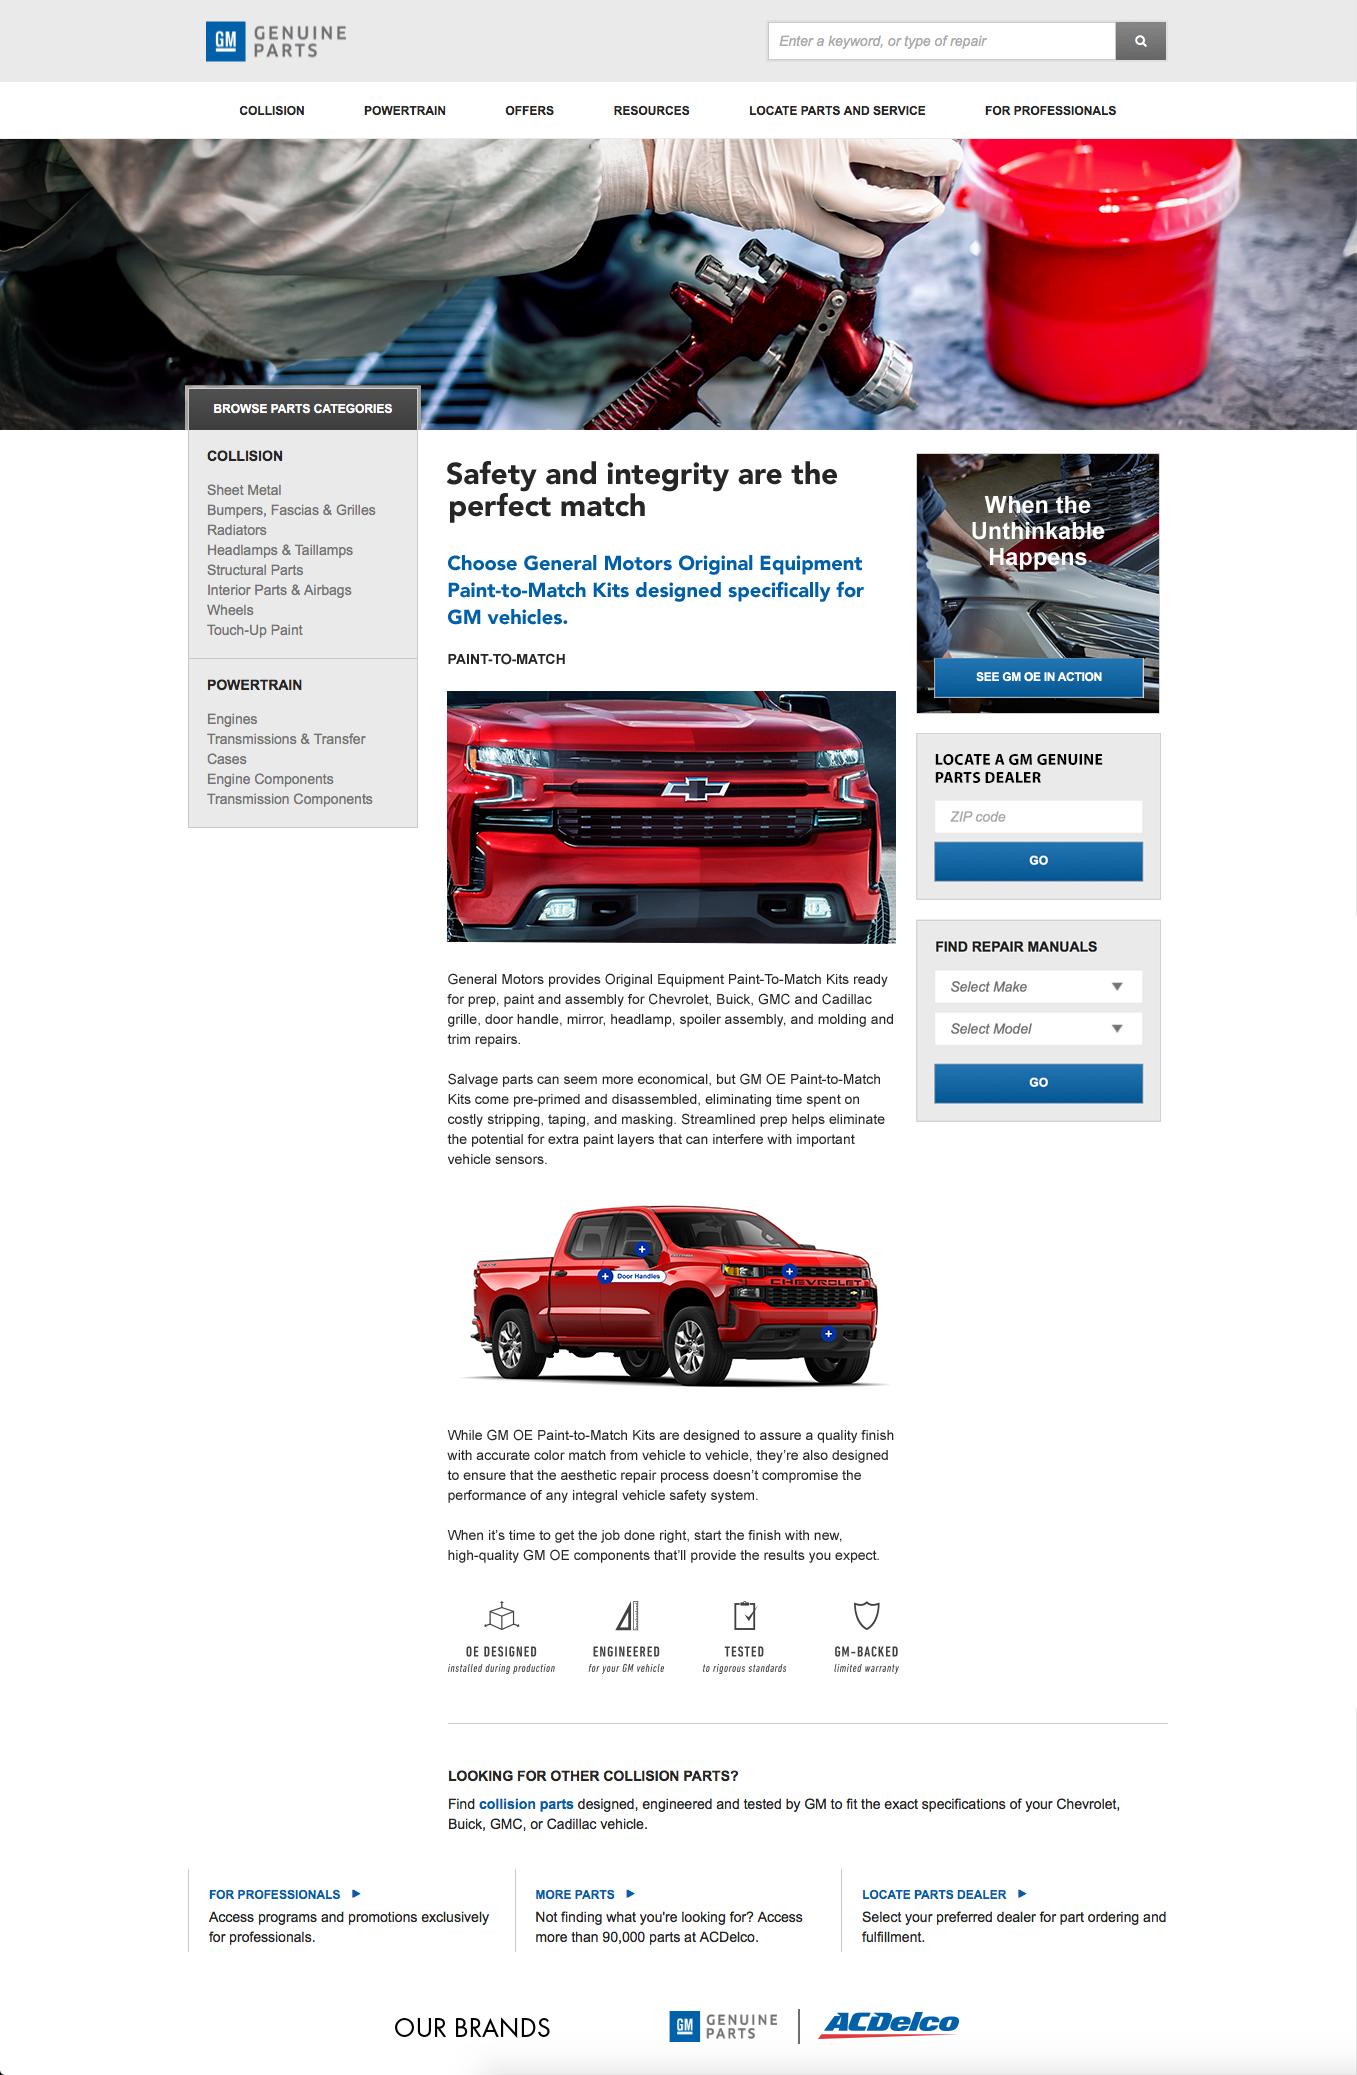 gmgp-19-consumer-collision-site-Paint_FULL PAGE.jpg